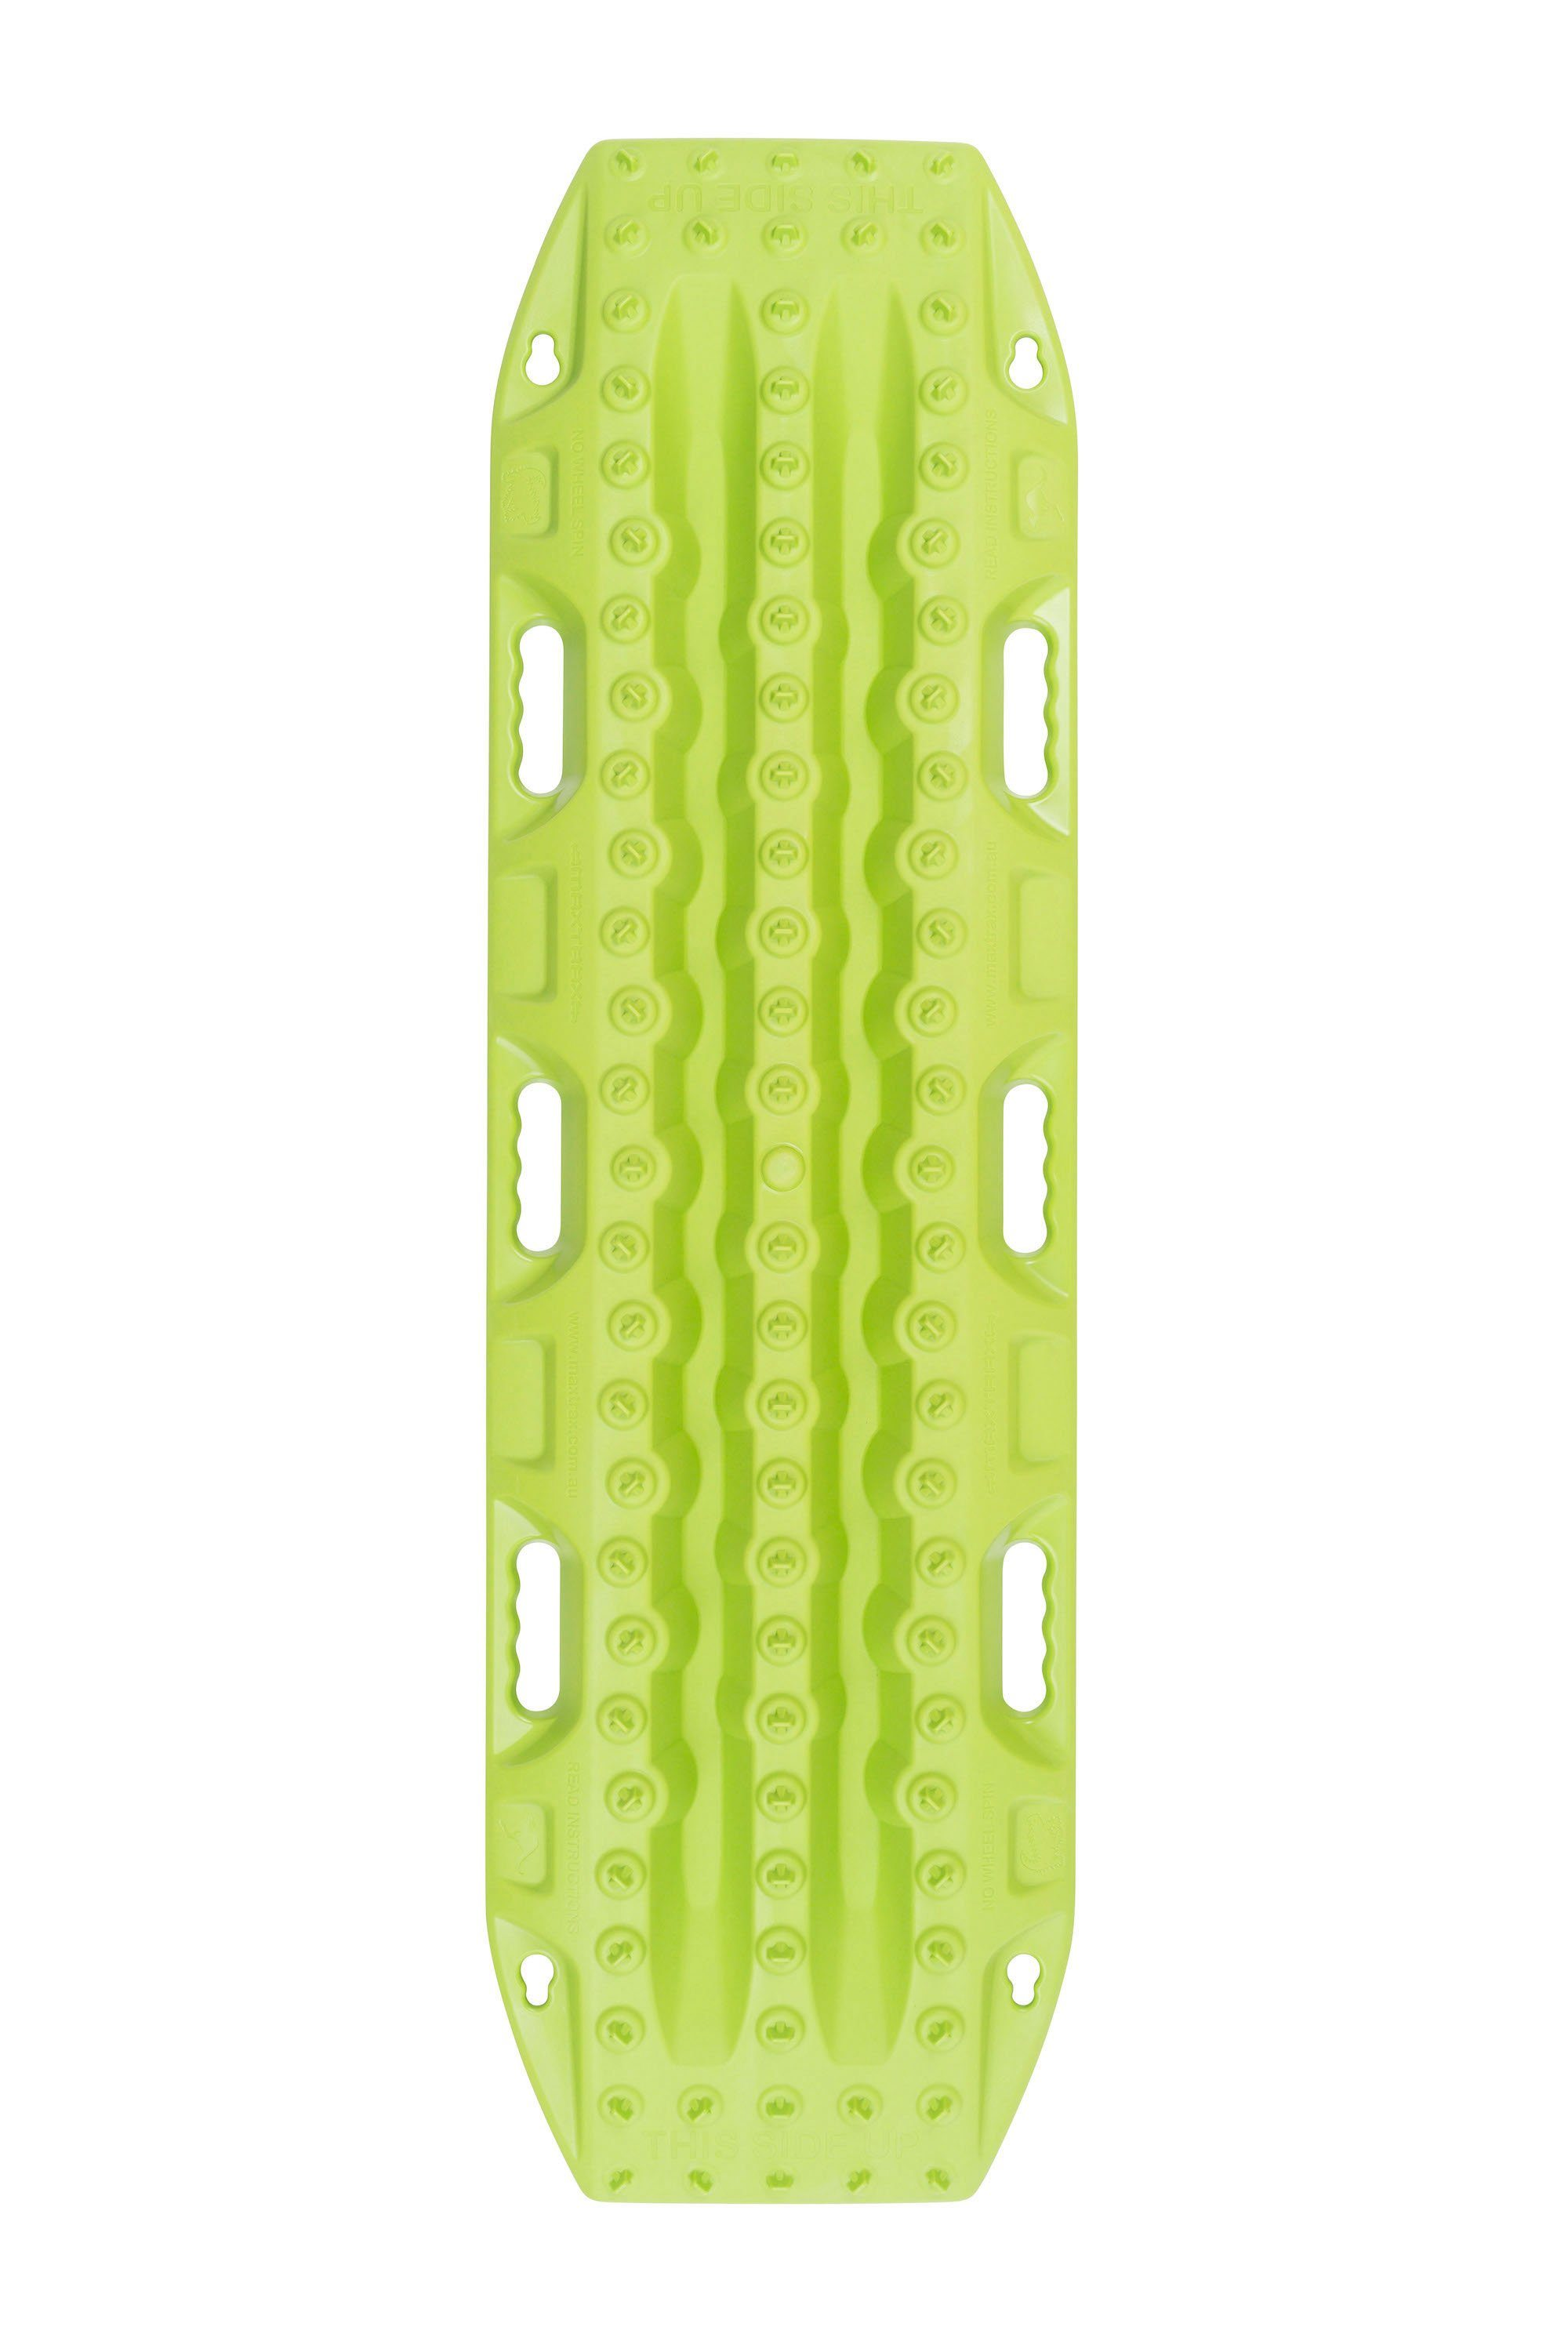 MAXTRAX MKII Lime Green Recovery Boards  Recovery Gear MAXTRAX- Adventure Imports